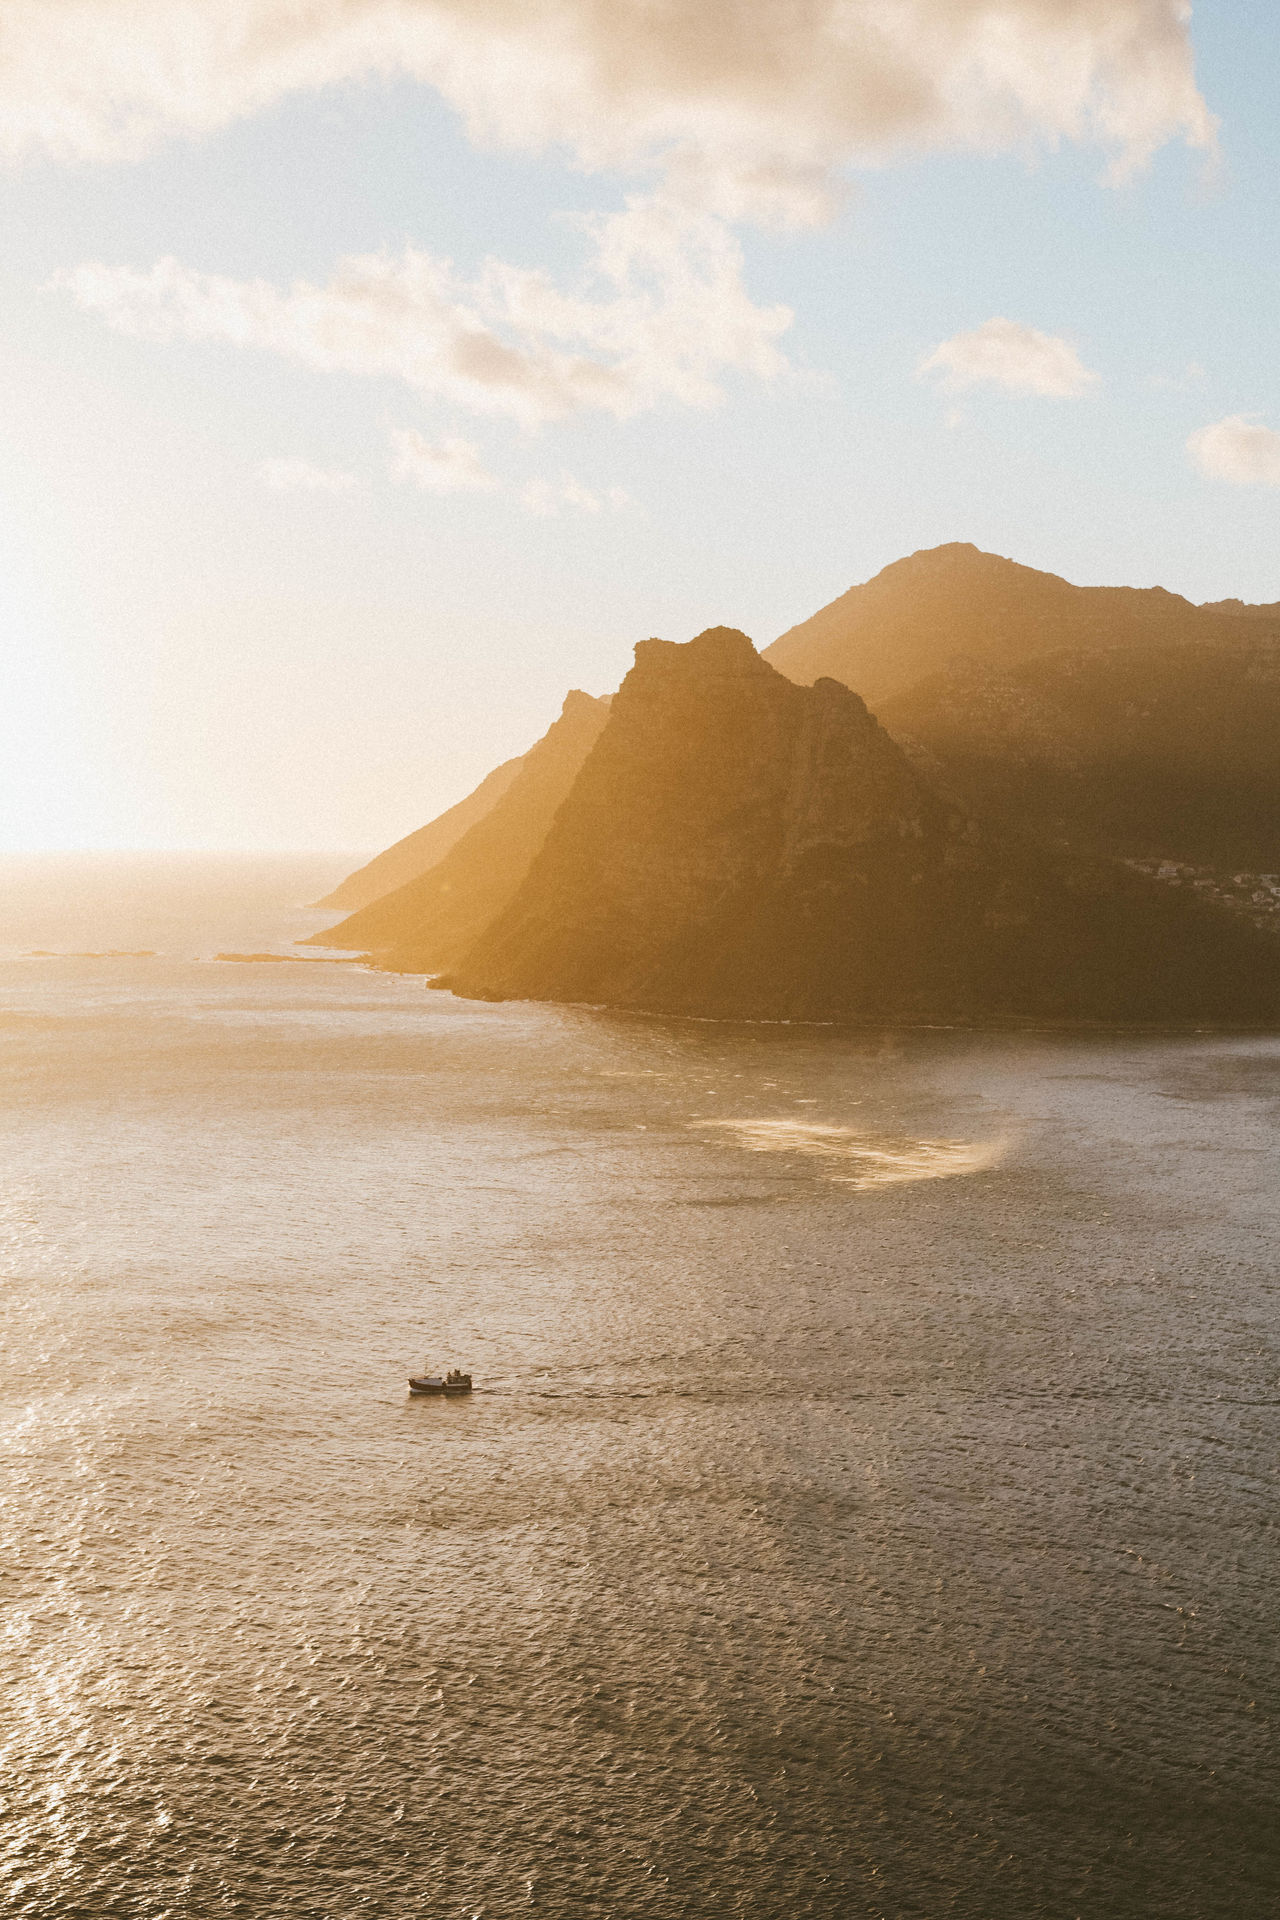 Beautiful stock photos of africa, Cape Town, Mountain, South Africa, beach